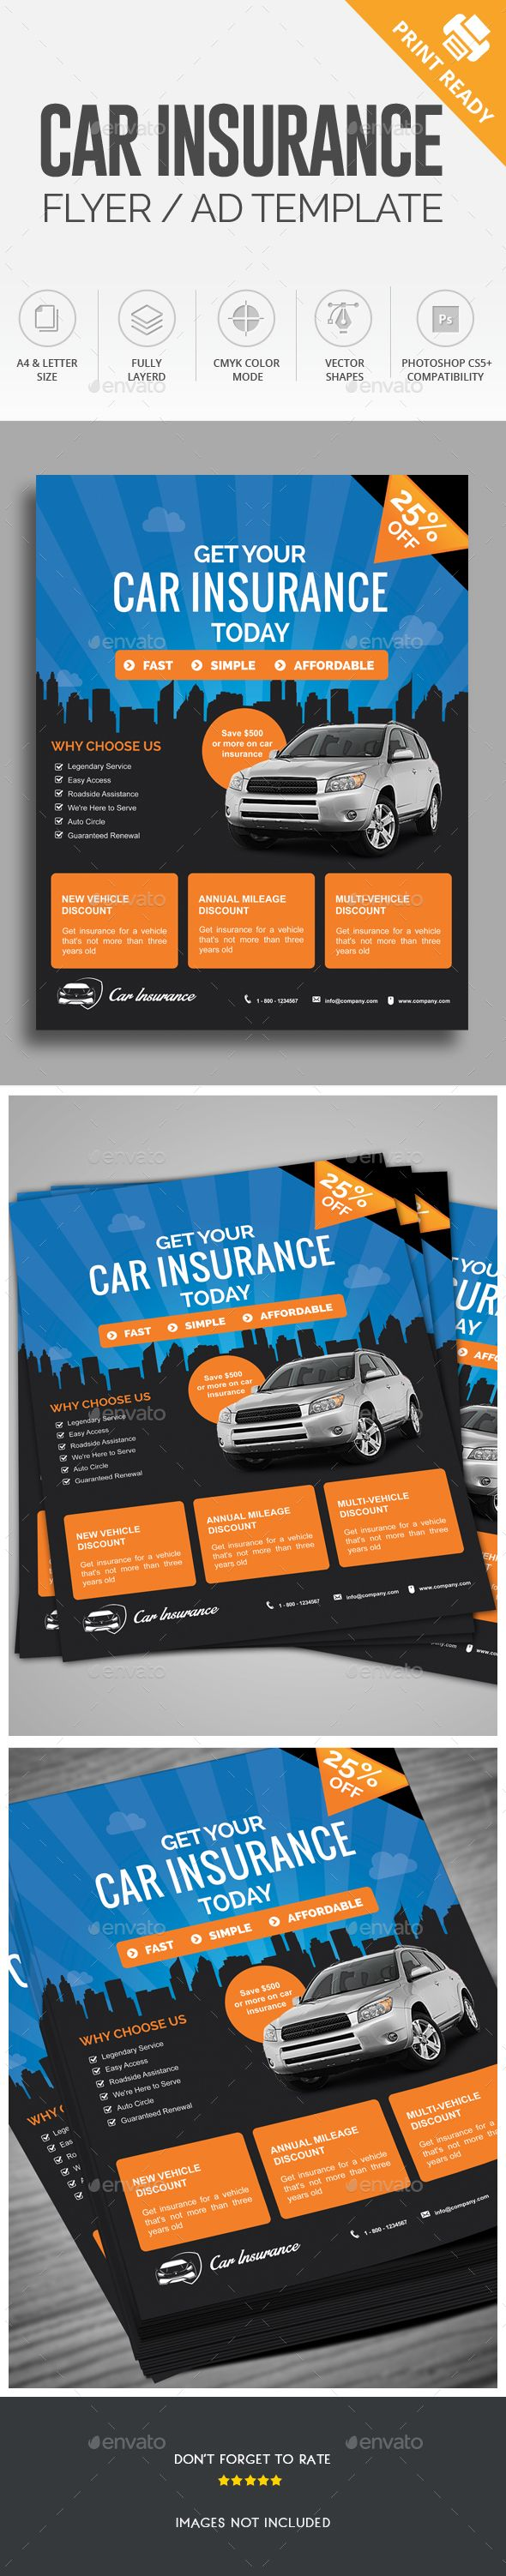 Car Insurance Flyer Ad Template By Msrashdi Automobile Car Corporate Flyer Ad Template A Brand New Flyer Template Of Flyer Insurance Ads Car Insurance